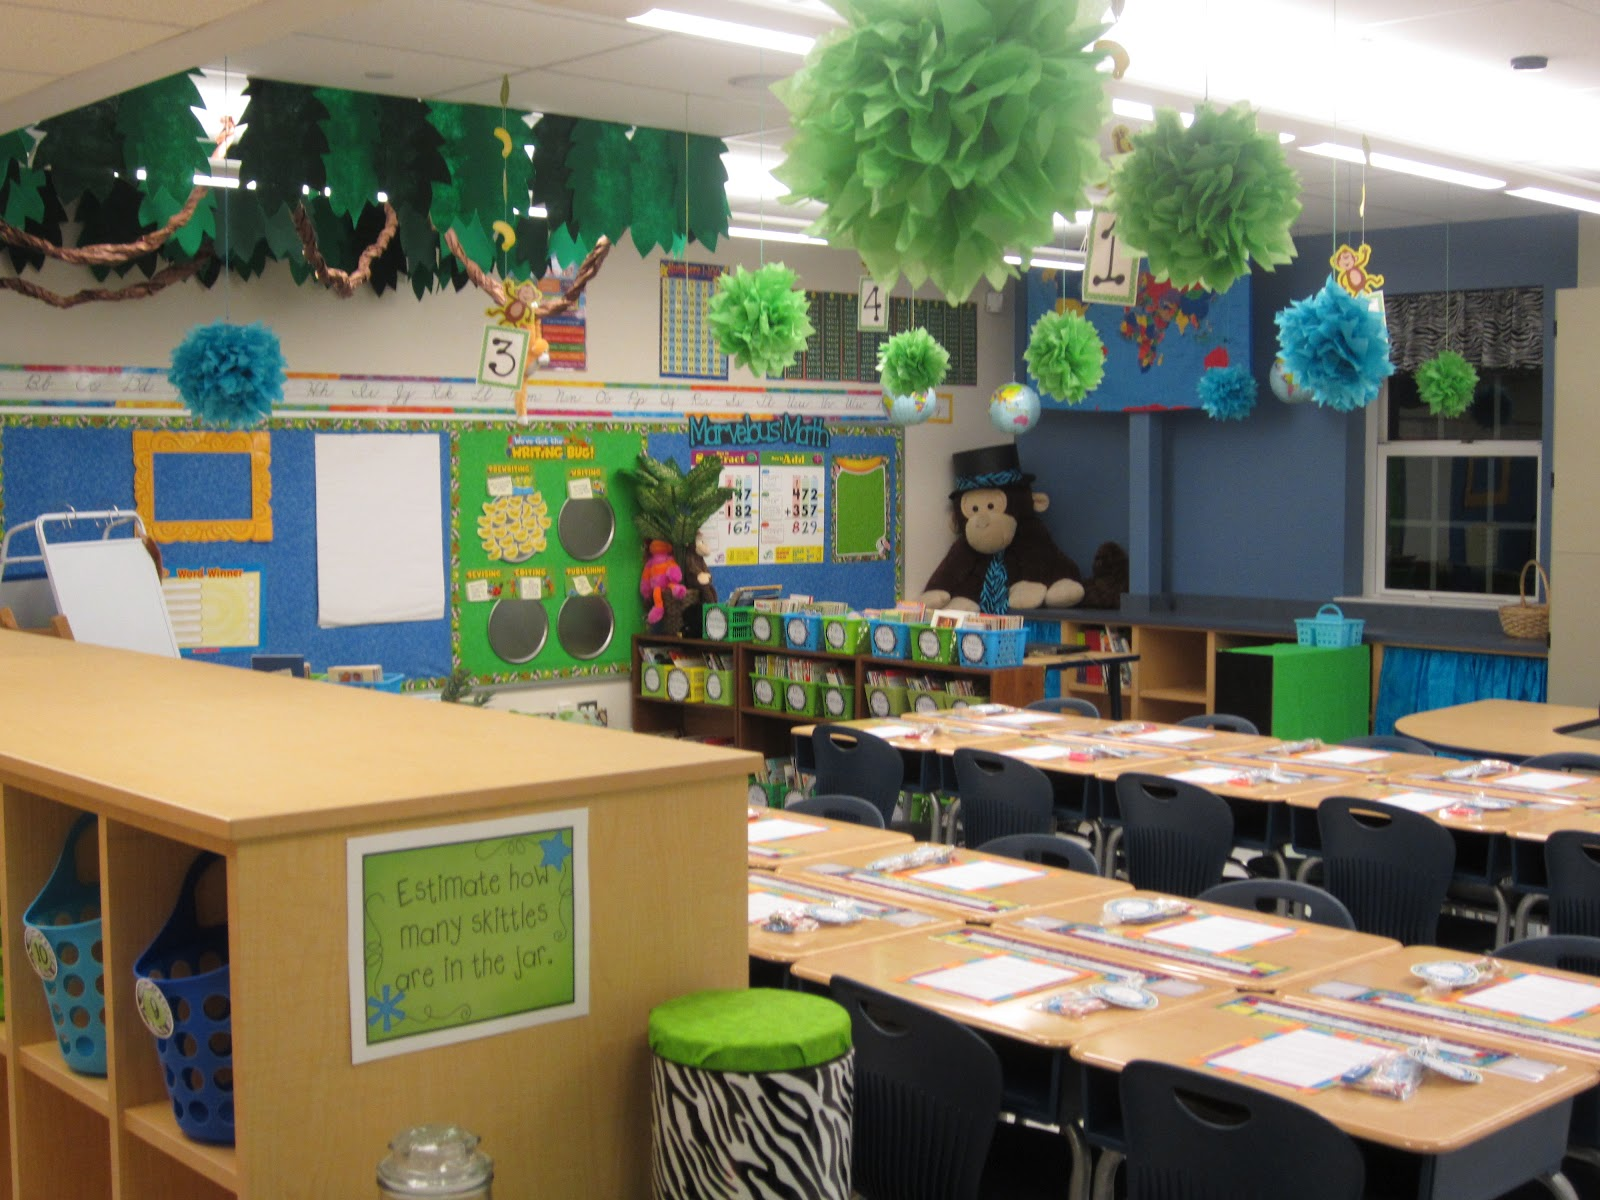 Design Ideas For Classroom ~ The creative chalkboard classroom tour pictures galore